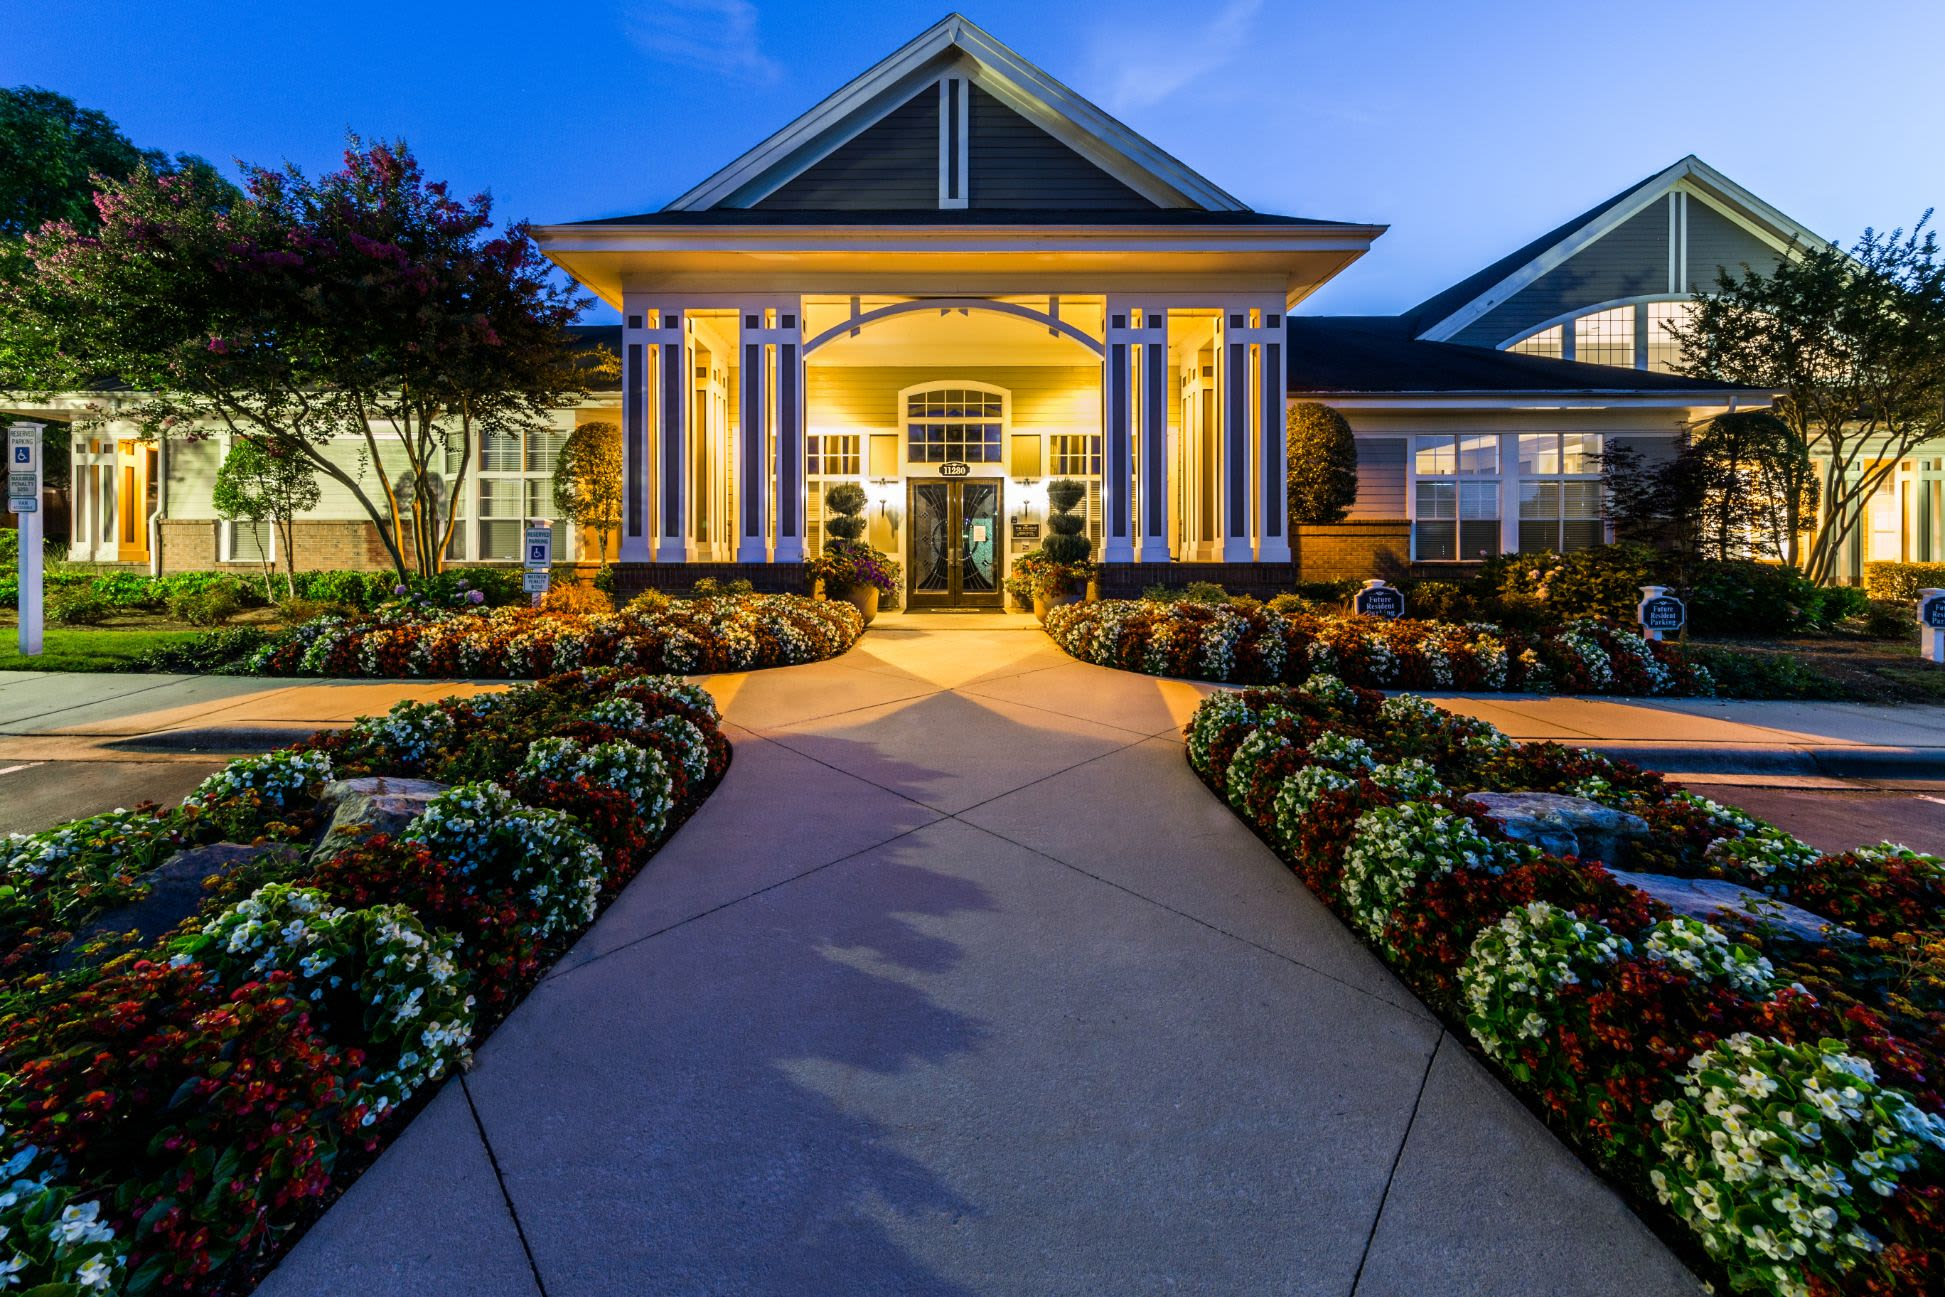 Exterior of The Preserve at Ballantyne Commons in Charlotte, North Carolina